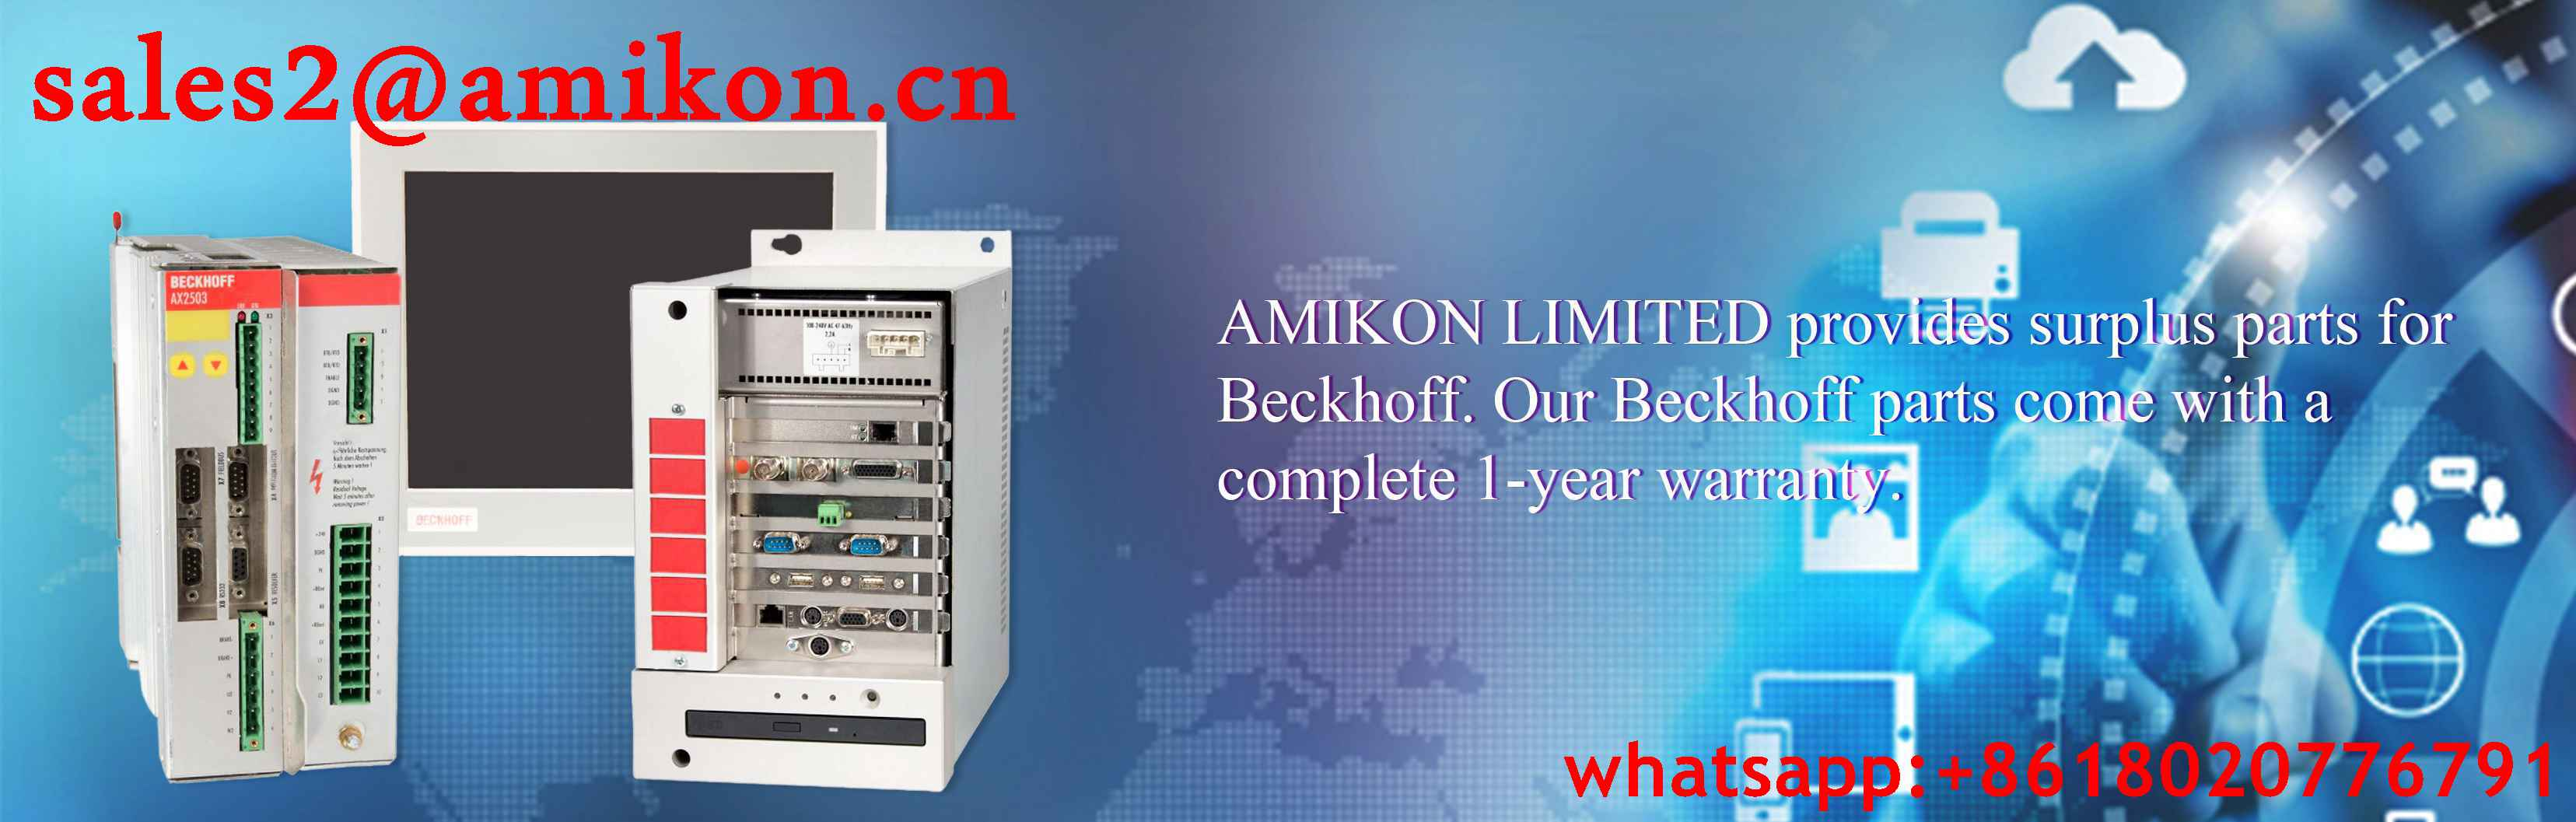 IC697CPM925 GE General Electric sales2@amikon.cn PLC DCS Industry Control System Module